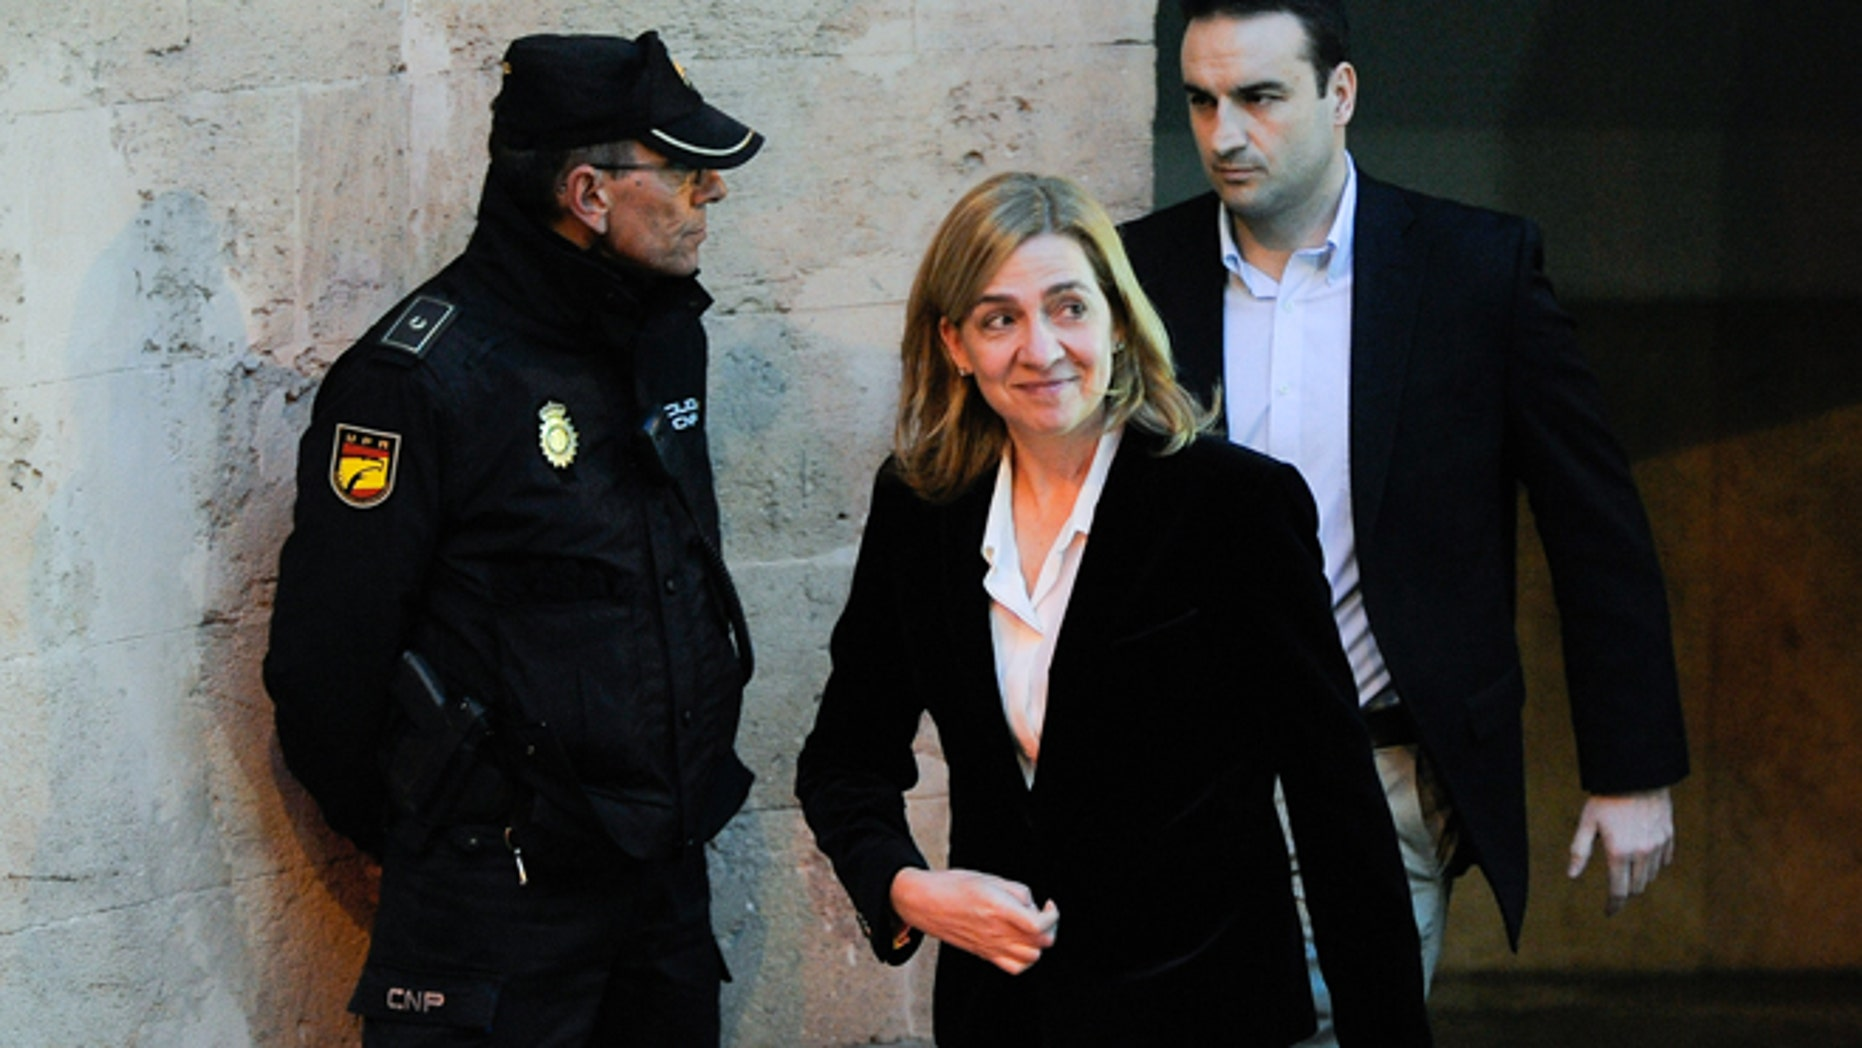 Princess Cristina on February 8, 2014 in Palma de Mallorca, Spain.